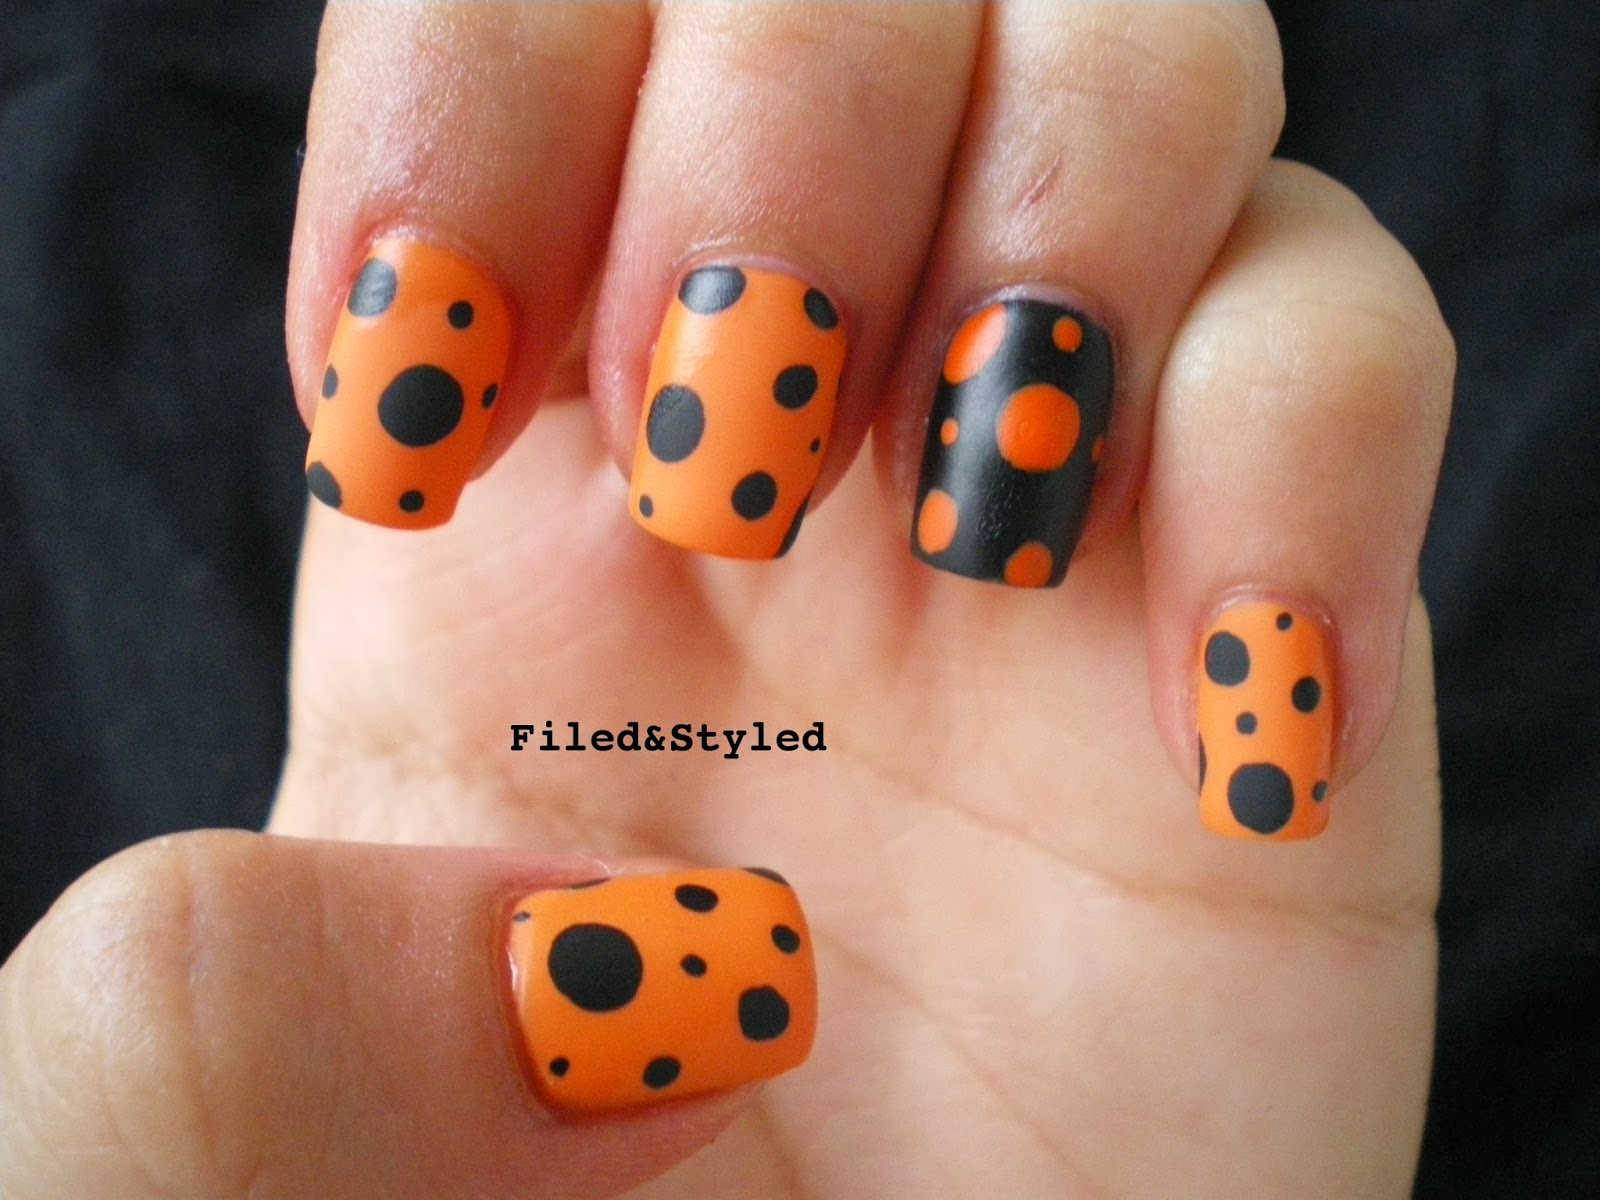 Fingernail designs 2013 halloween nail art solutioingenieria Choice Image